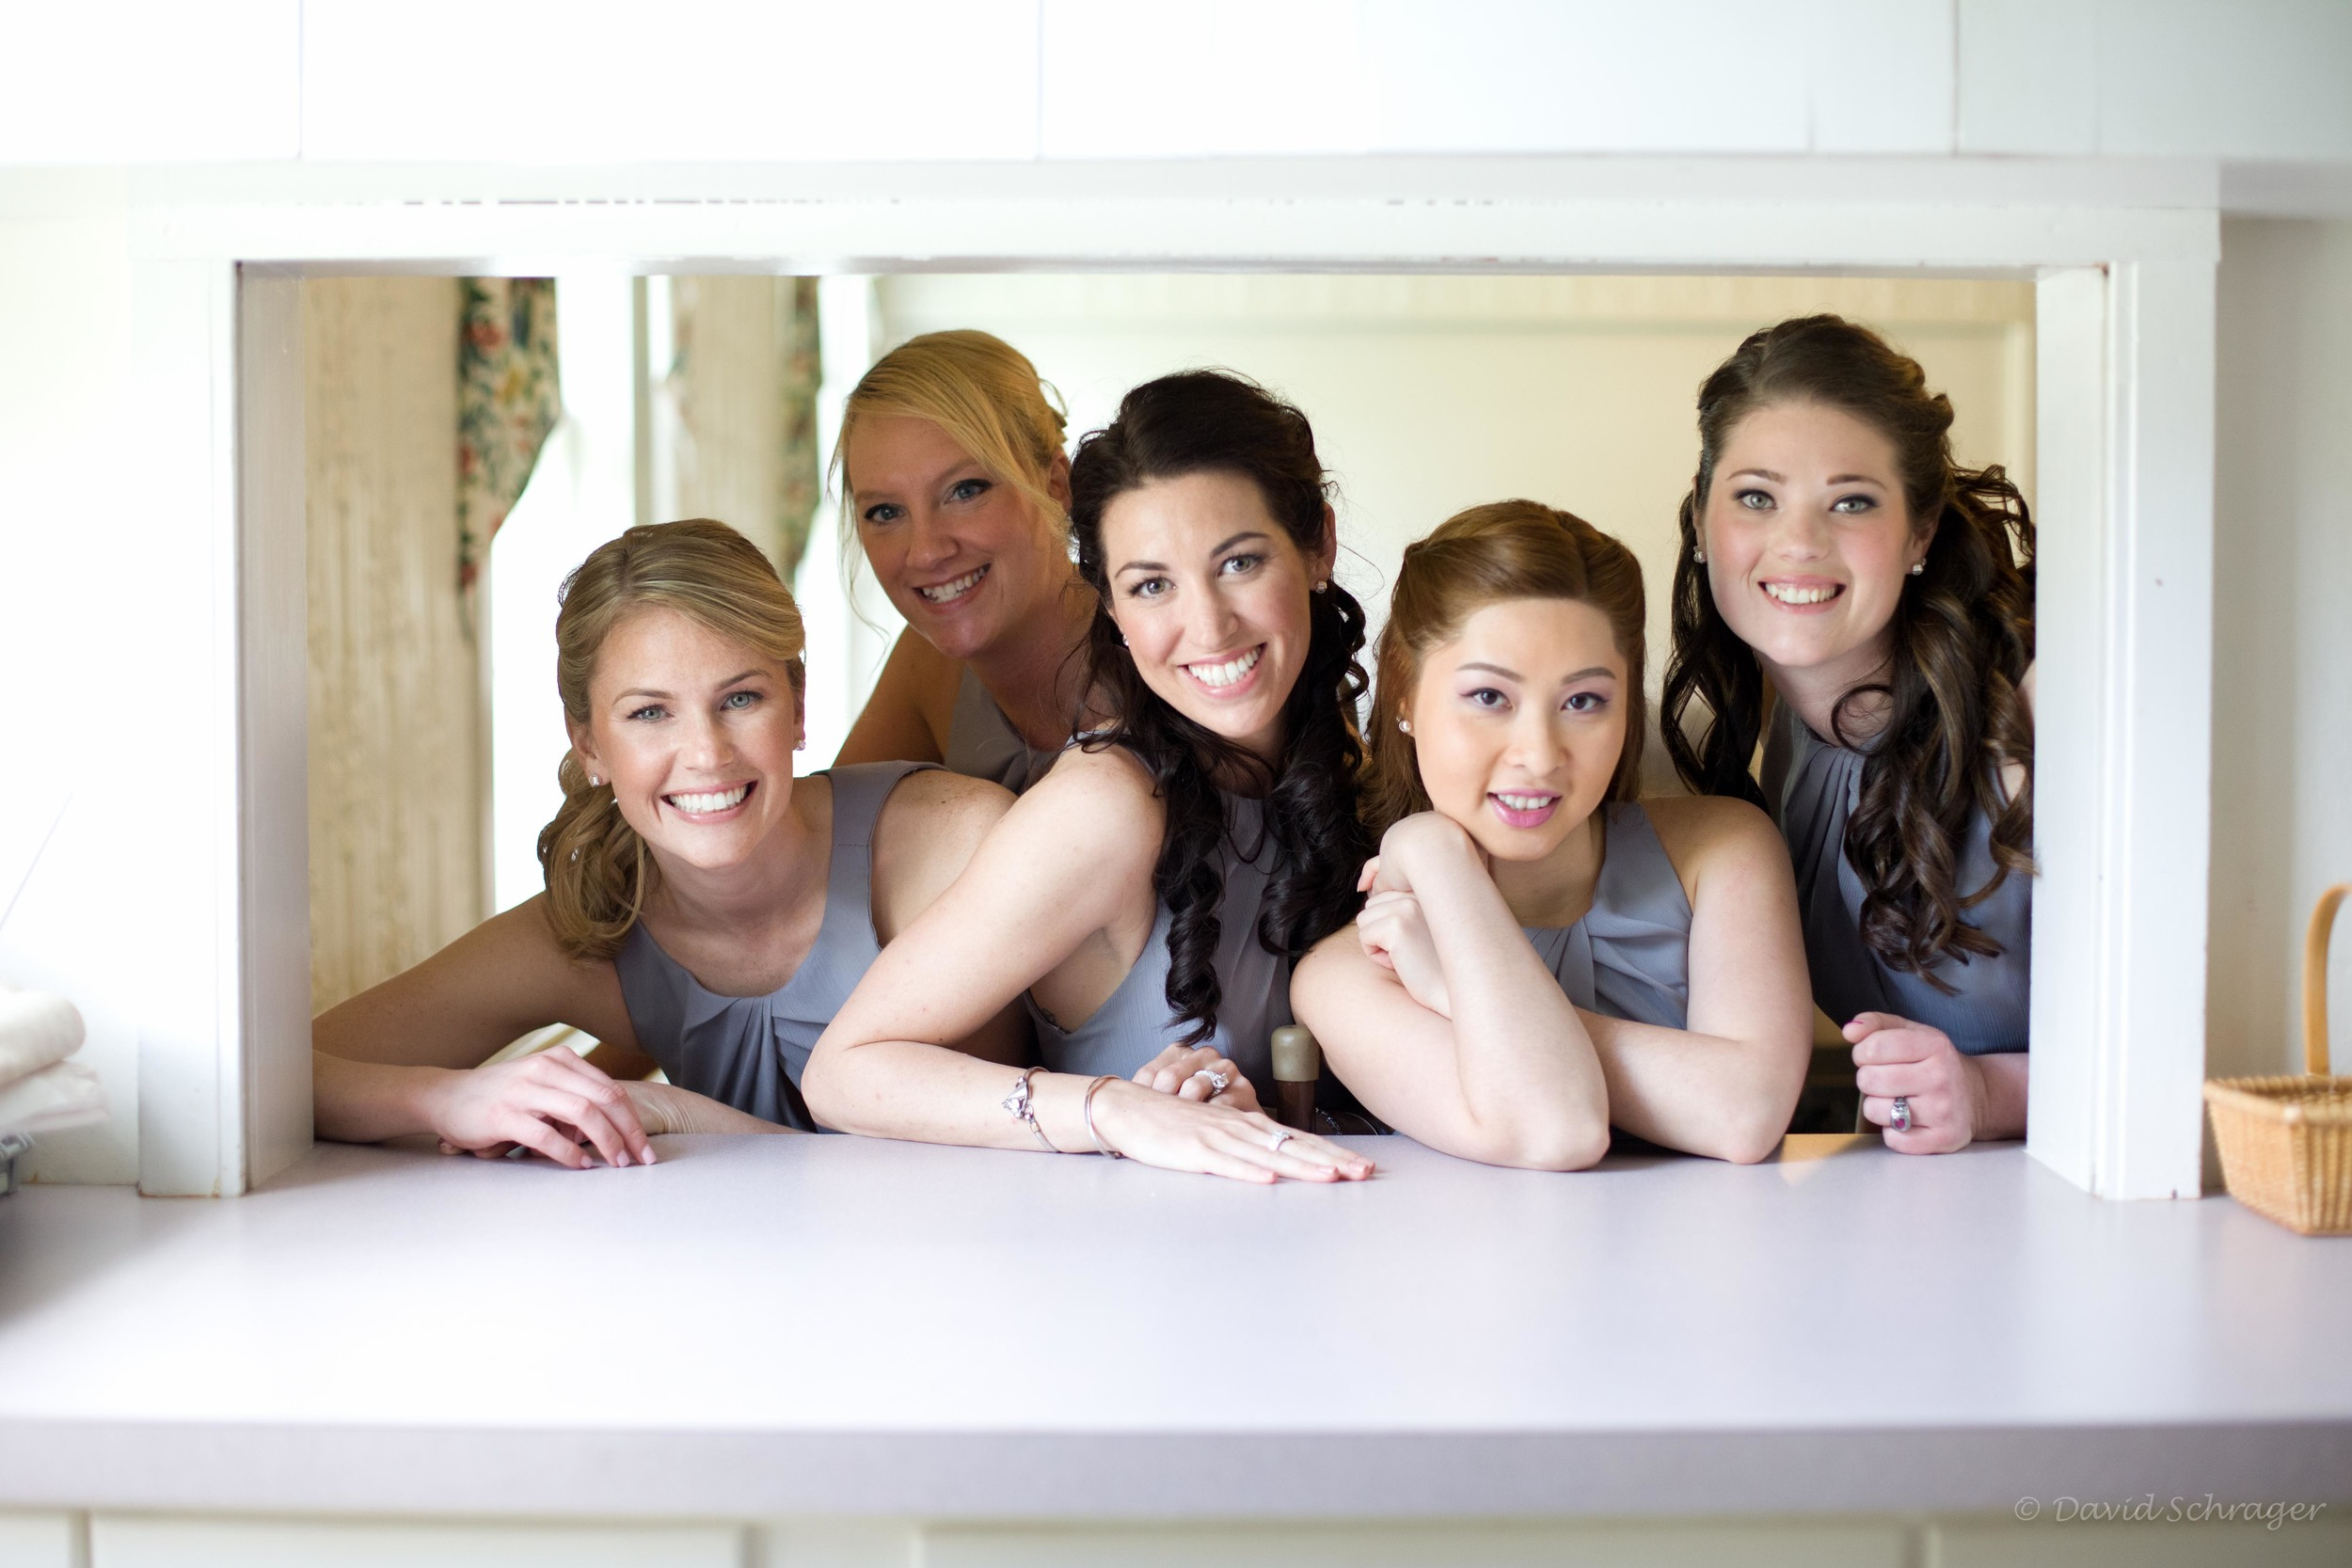 The bridesmaids had some fun while Lauren got into her dress,posing for photos in the spacious church kitchen.